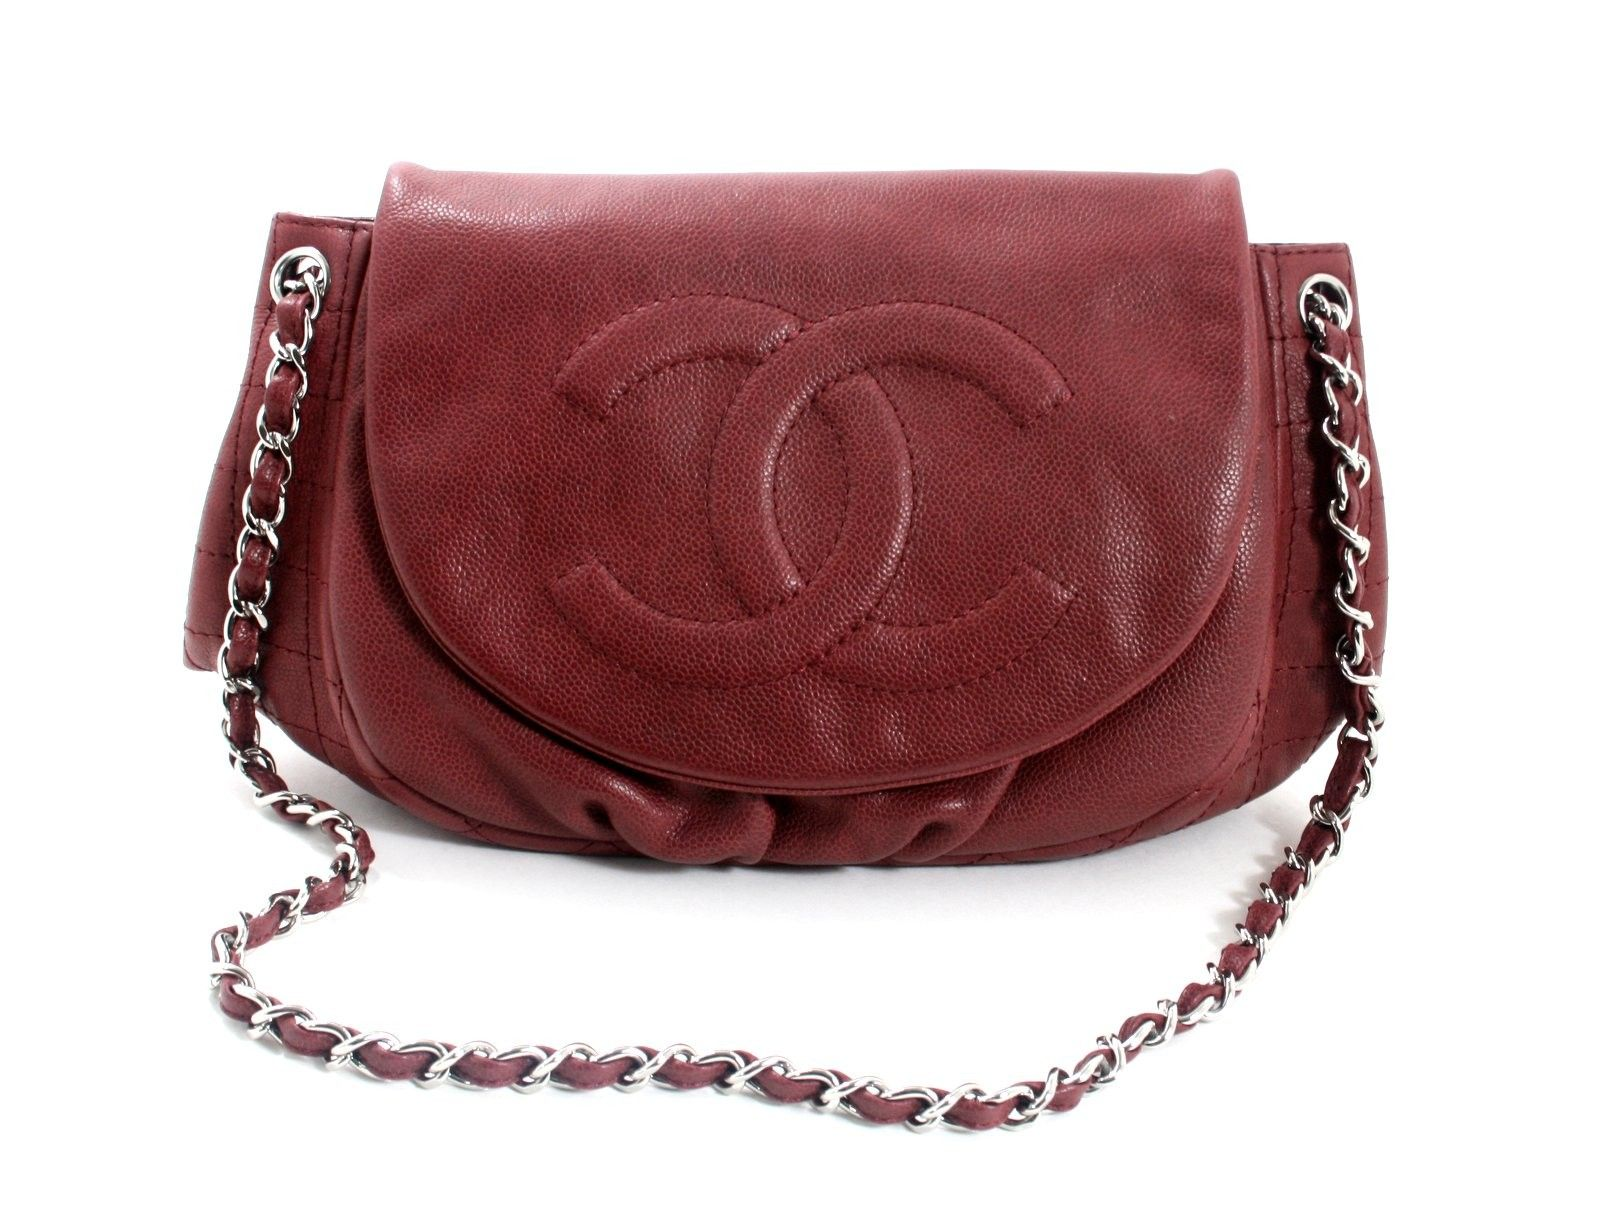 6084c9e3f8d2 Chanel Wine Caviar Leather Half Moon Shoulder Bag - In better than  excellent condition